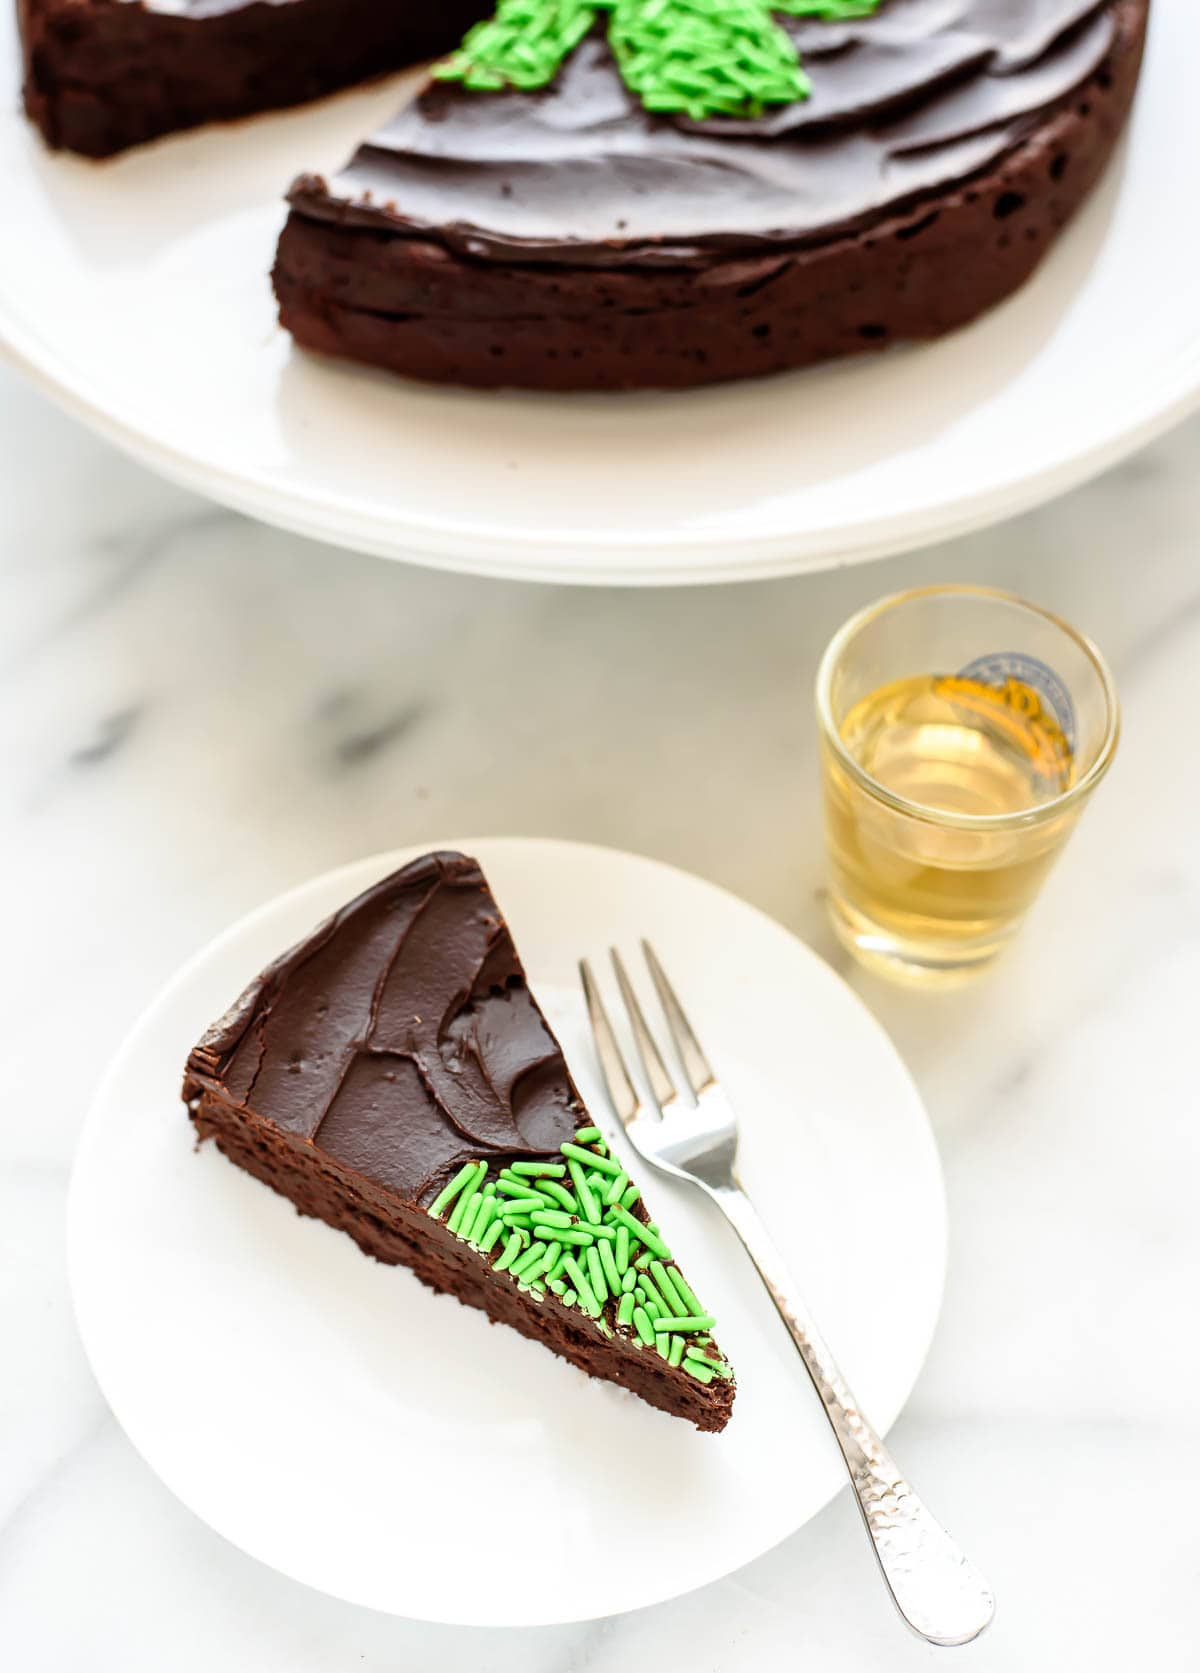 A rich, dense flourless chocolate cake made with WHISKEY! Topped with whiskey chocolate ganache, it's easy to make and a perfect St. Patrick's Day dessert. @wellplated